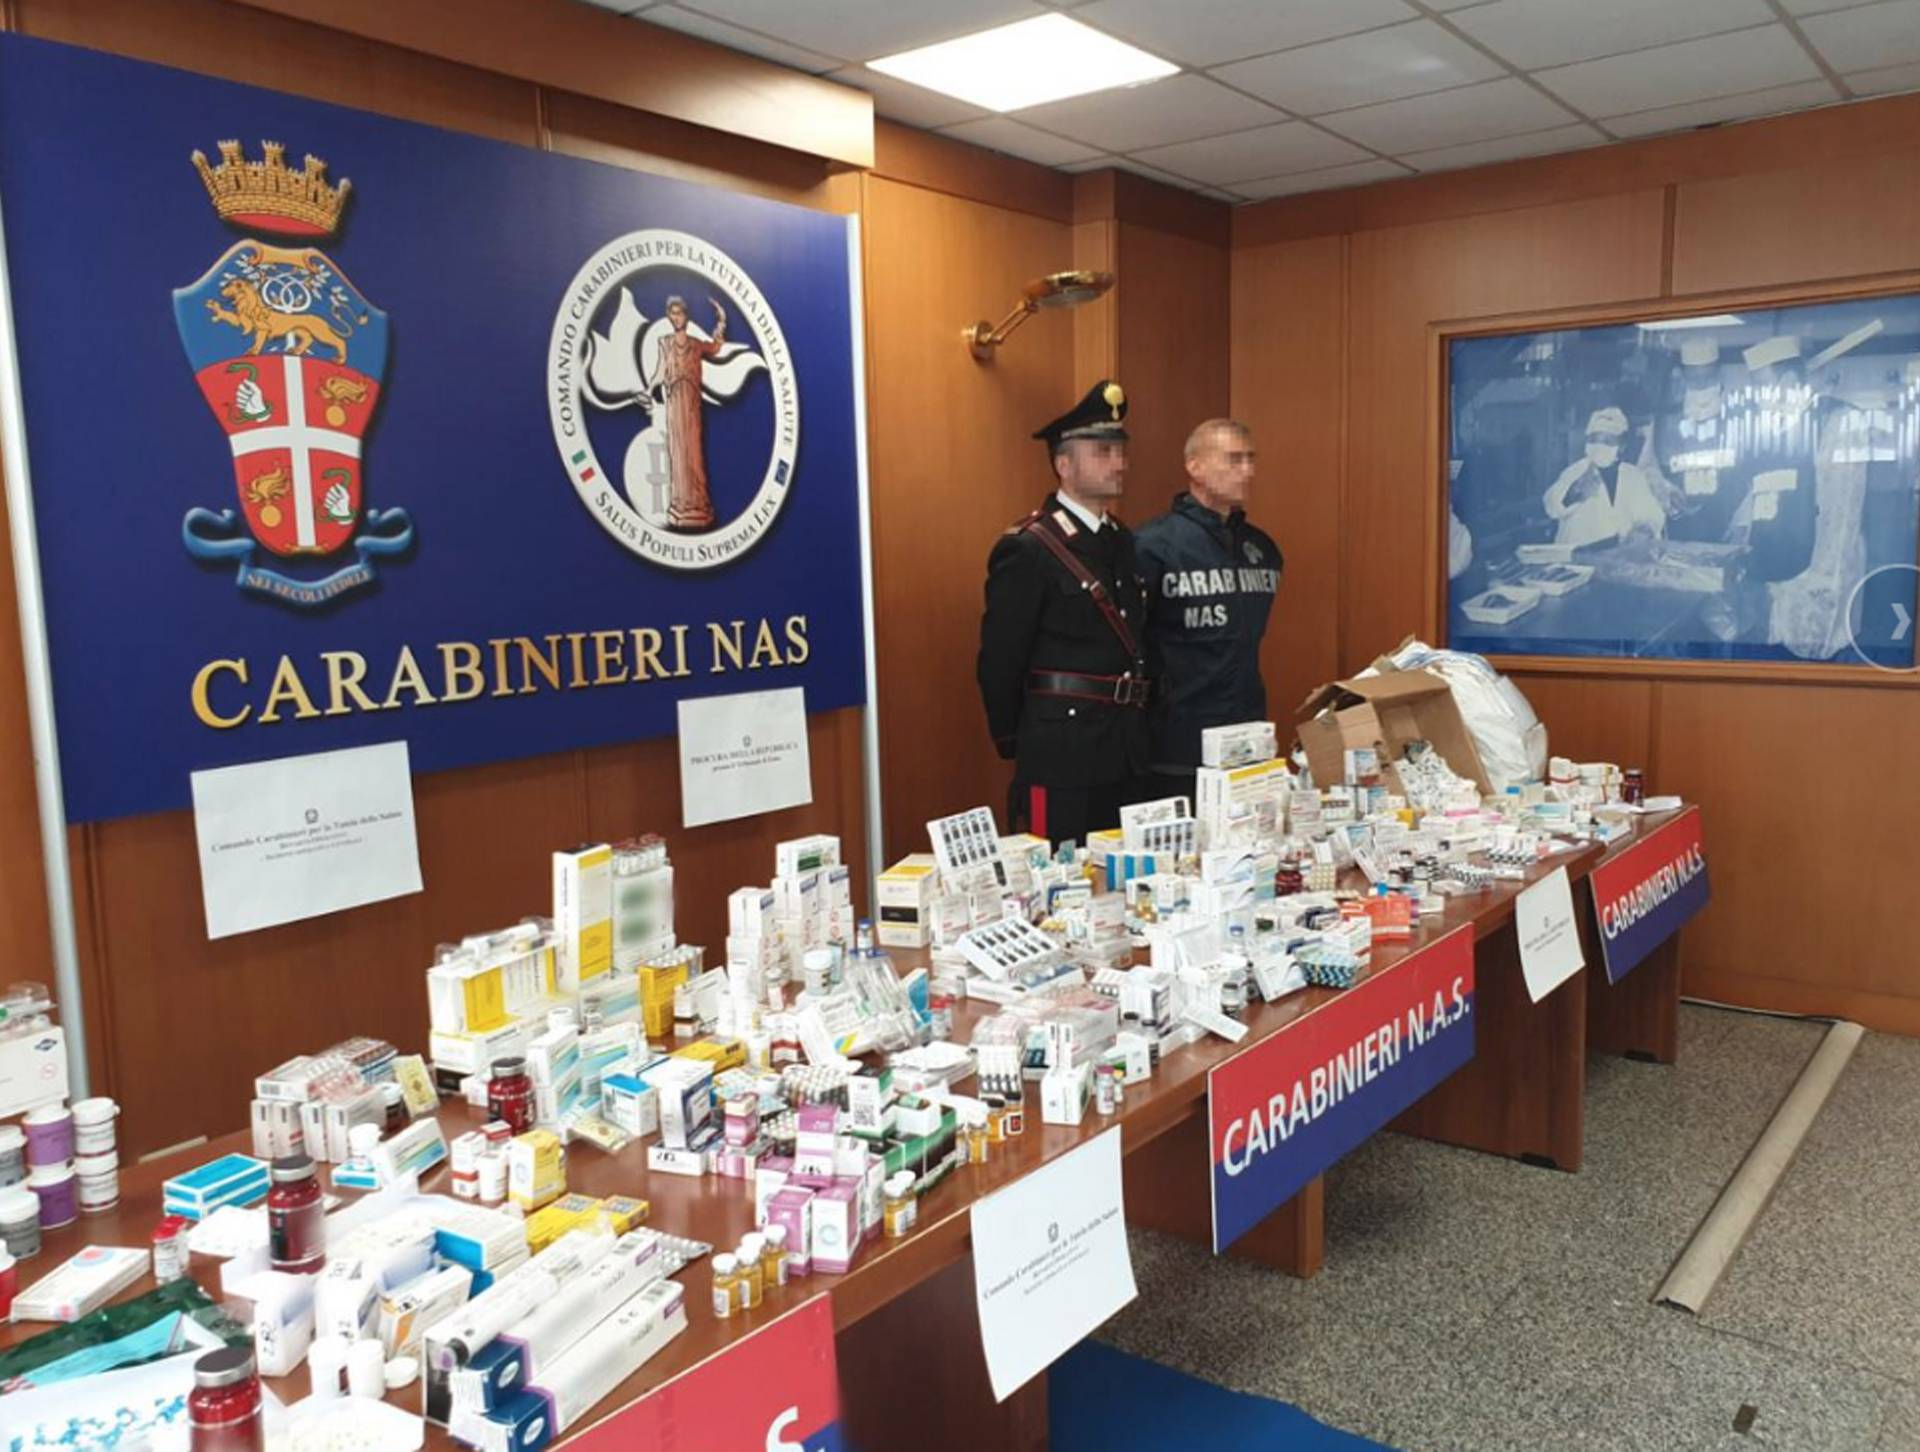 Police Conduct Anti-Doping Busts Across Europe